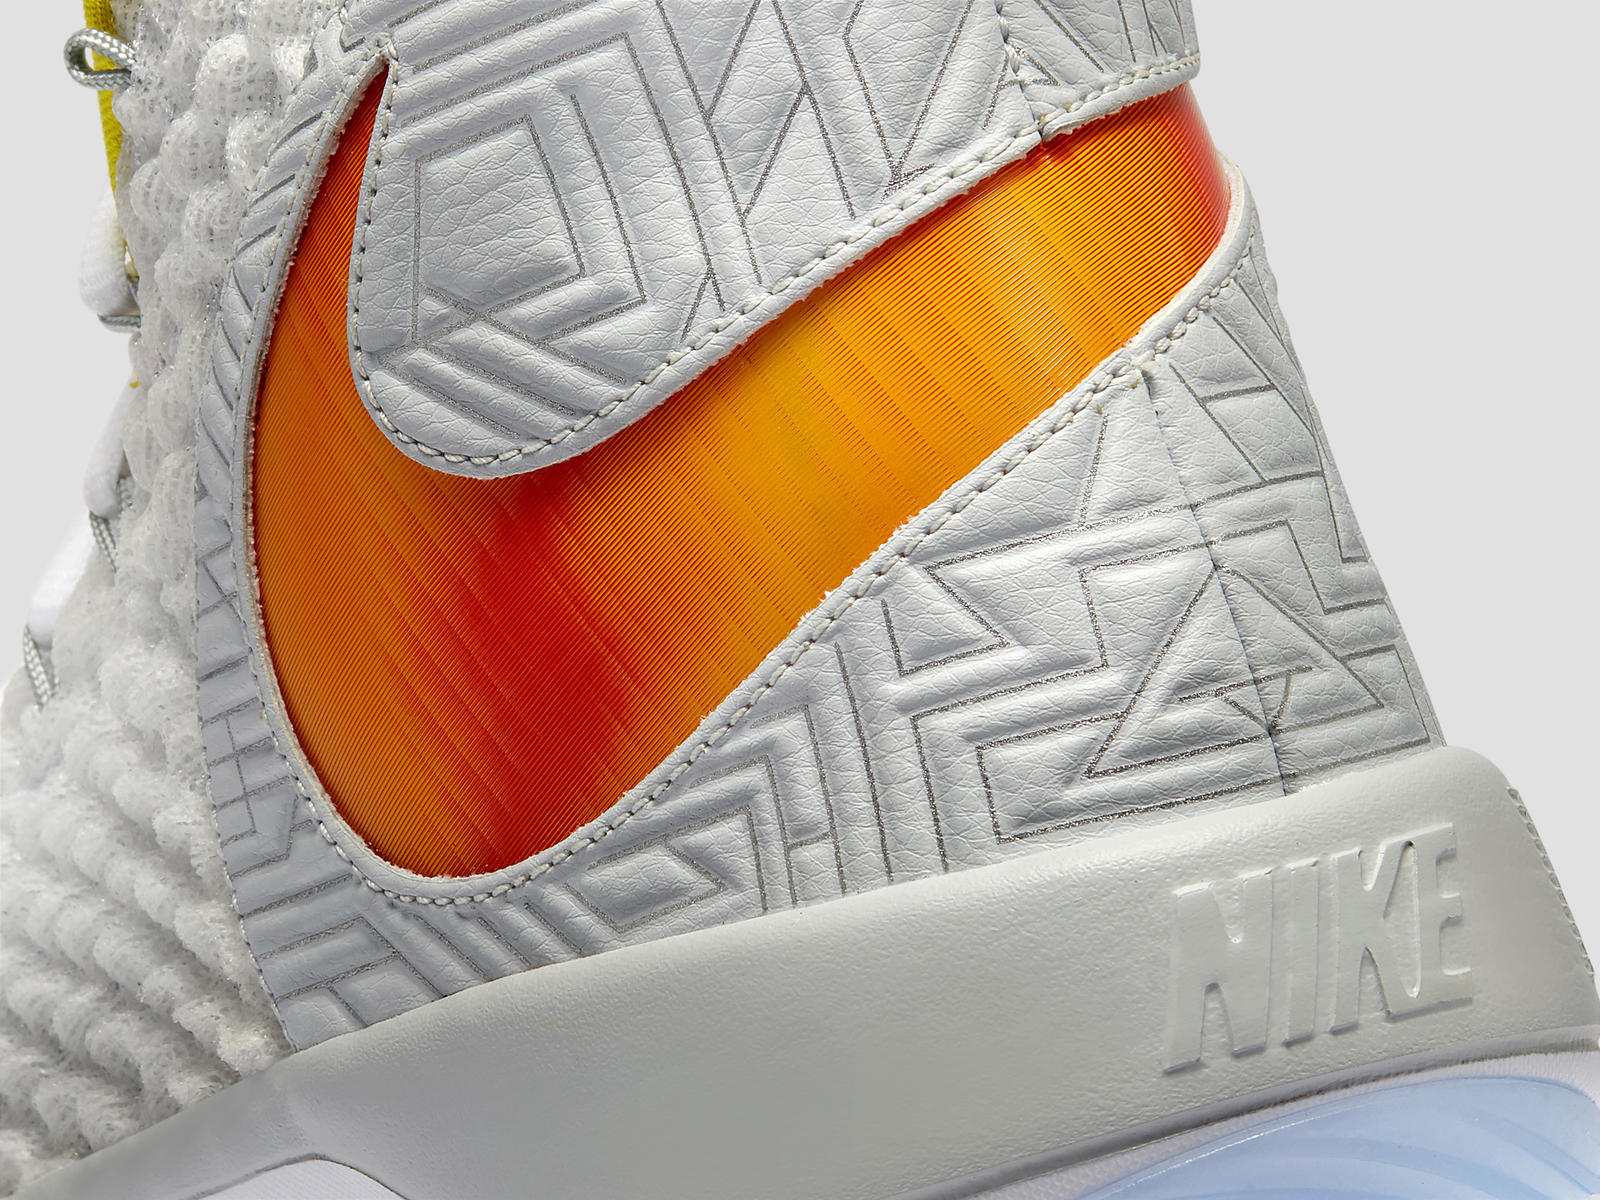 Nike AlphaDunk Official Images and